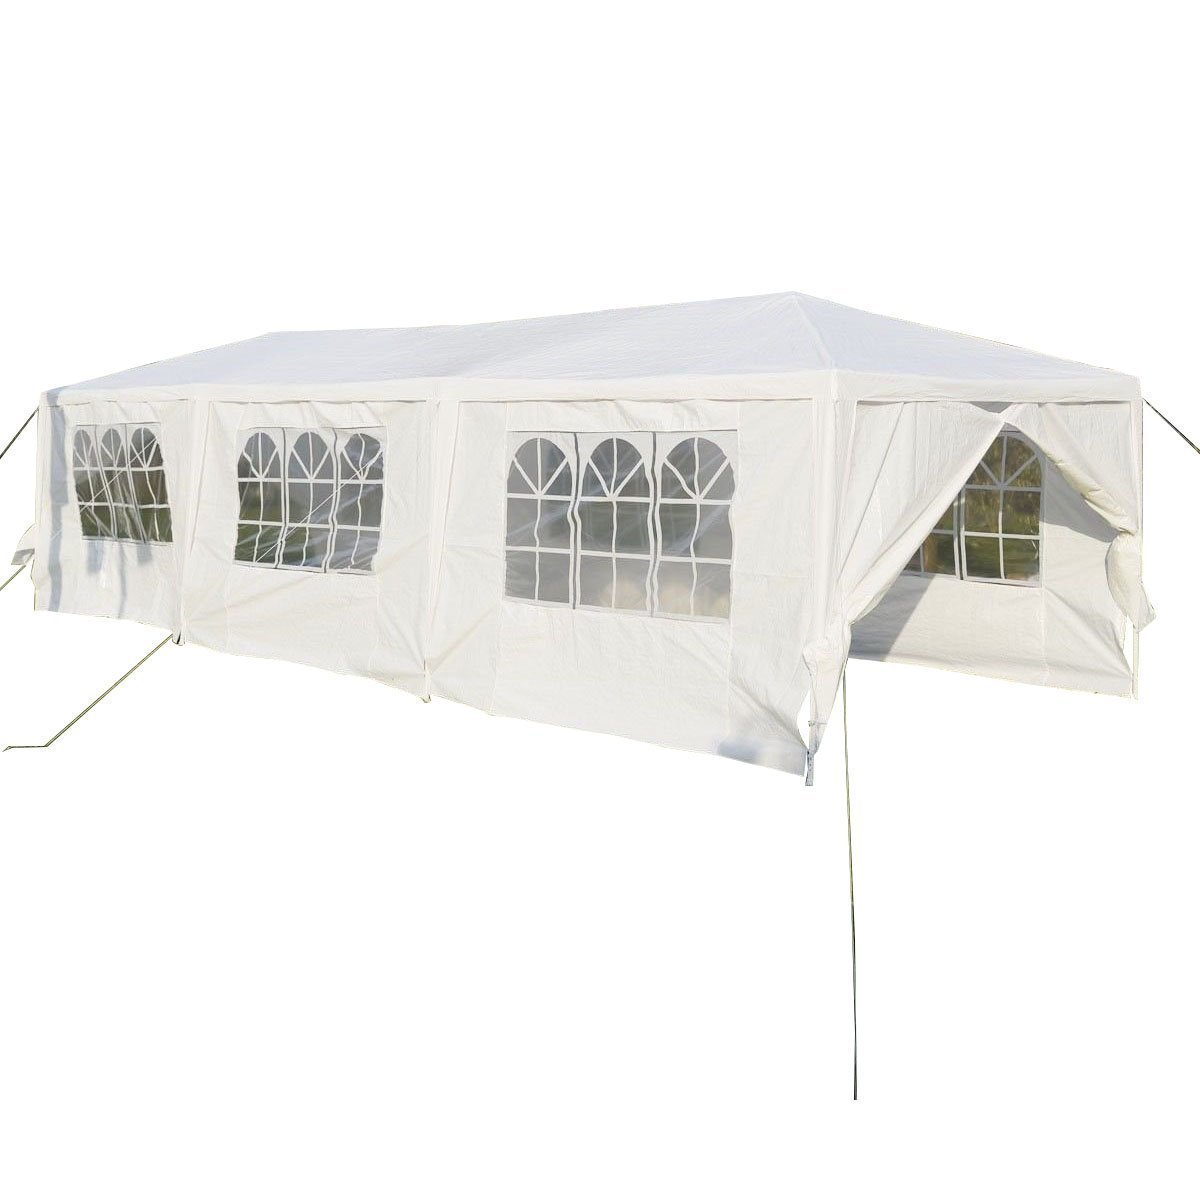 Amazon.com : BenefitUSA Wedding Party Tent Outdoor Camping 10u0027x30u0027 Easy Set  Gazebo BBQ Pavilion Canopy Cater Events : Garden U0026 Outdoor